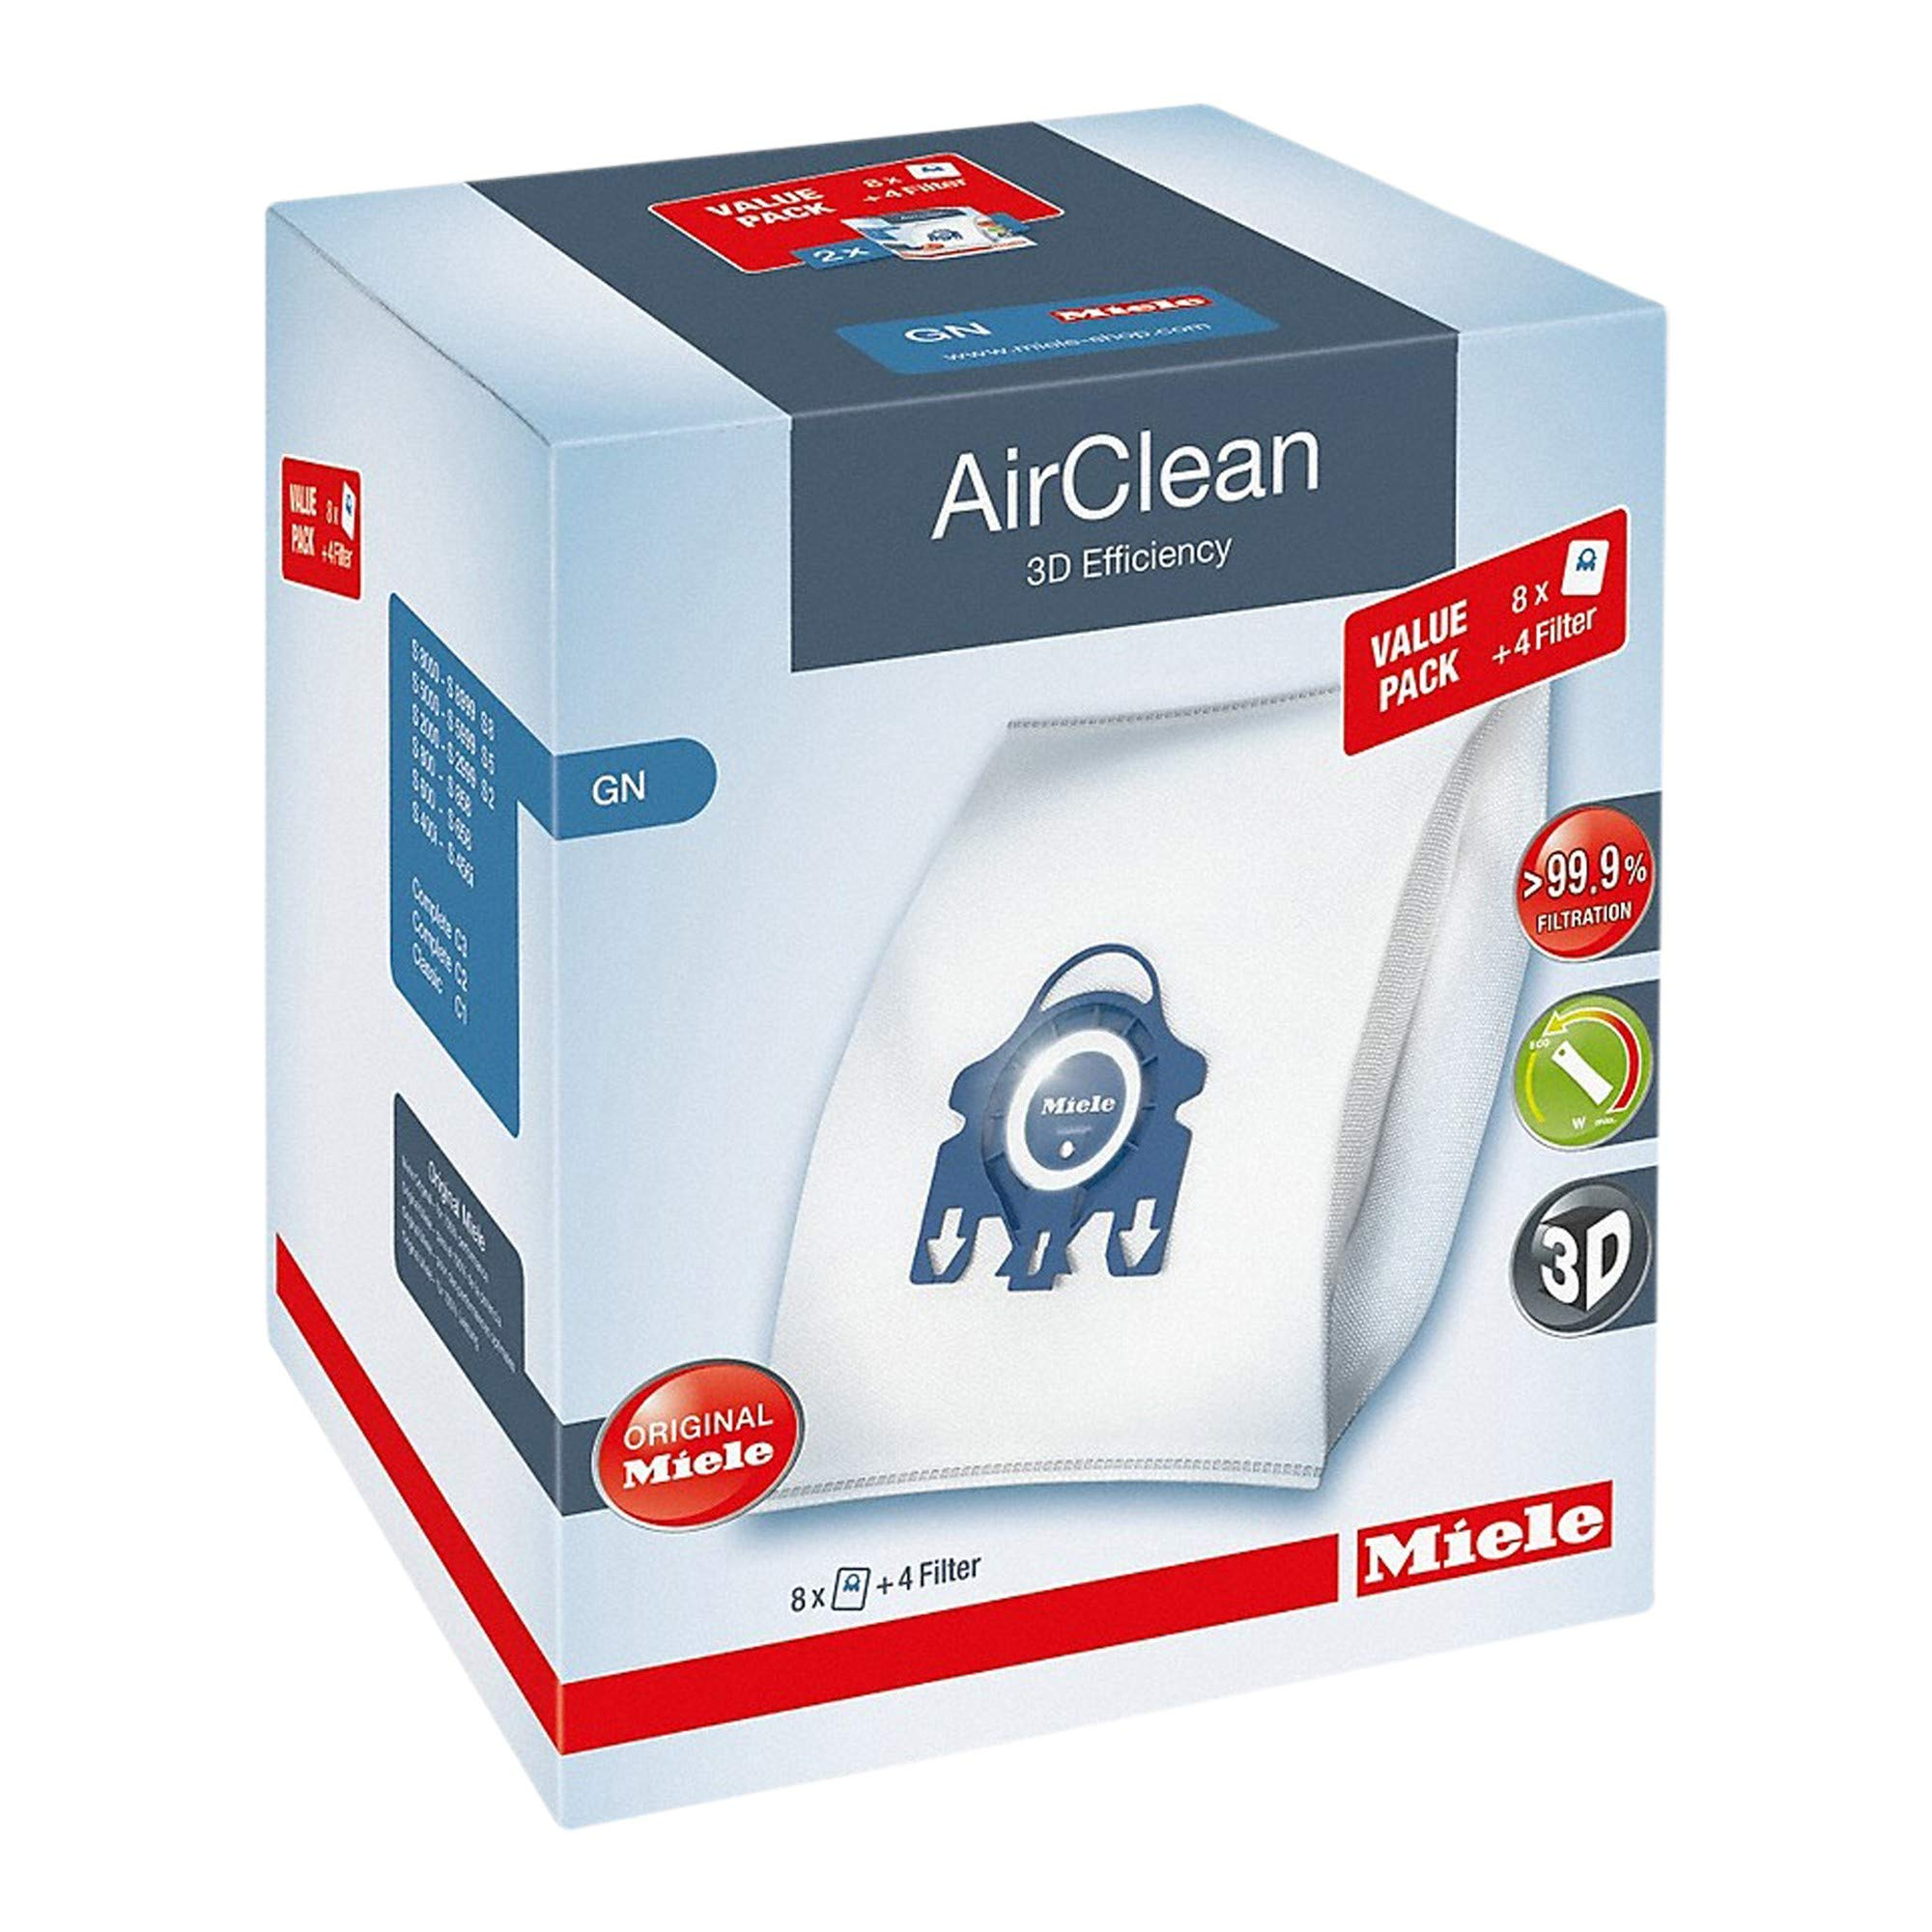 Miele AirClean 3D Efficiency Dust Bag, Type GN, XL Value Pack, 8 Bags & 4 Filters by Miele